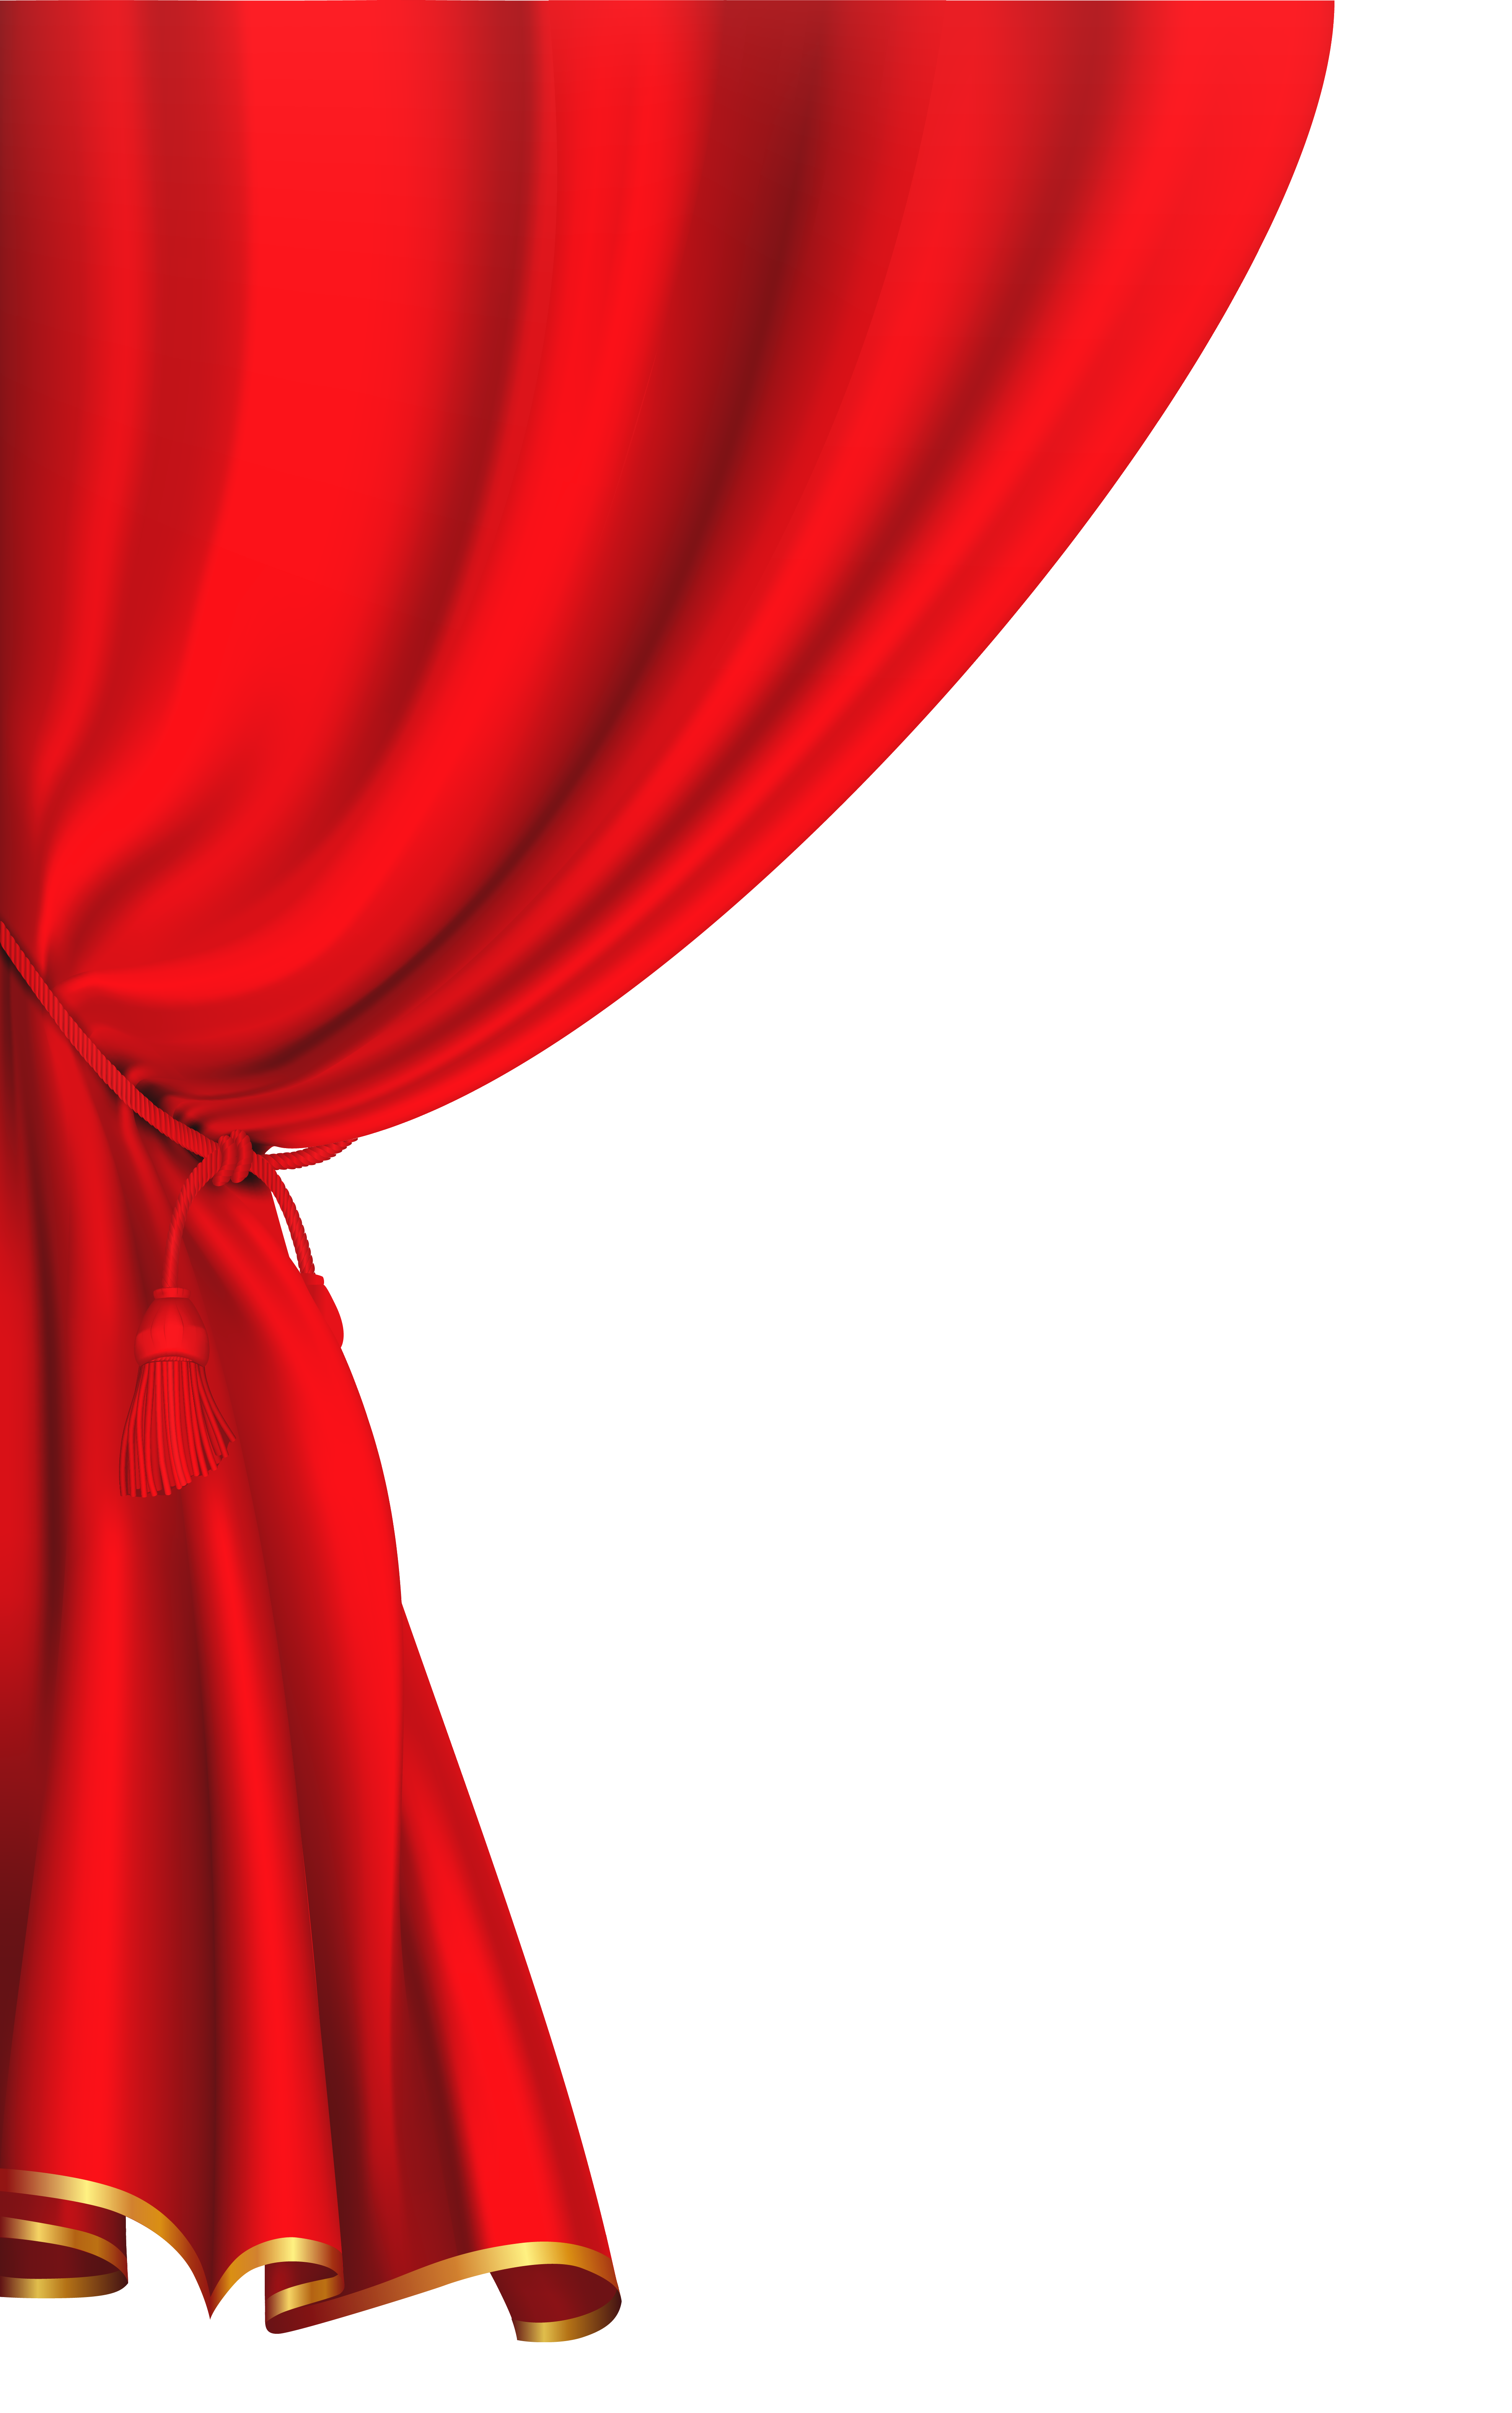 Red image gallery yopriceville. Curtain clipart